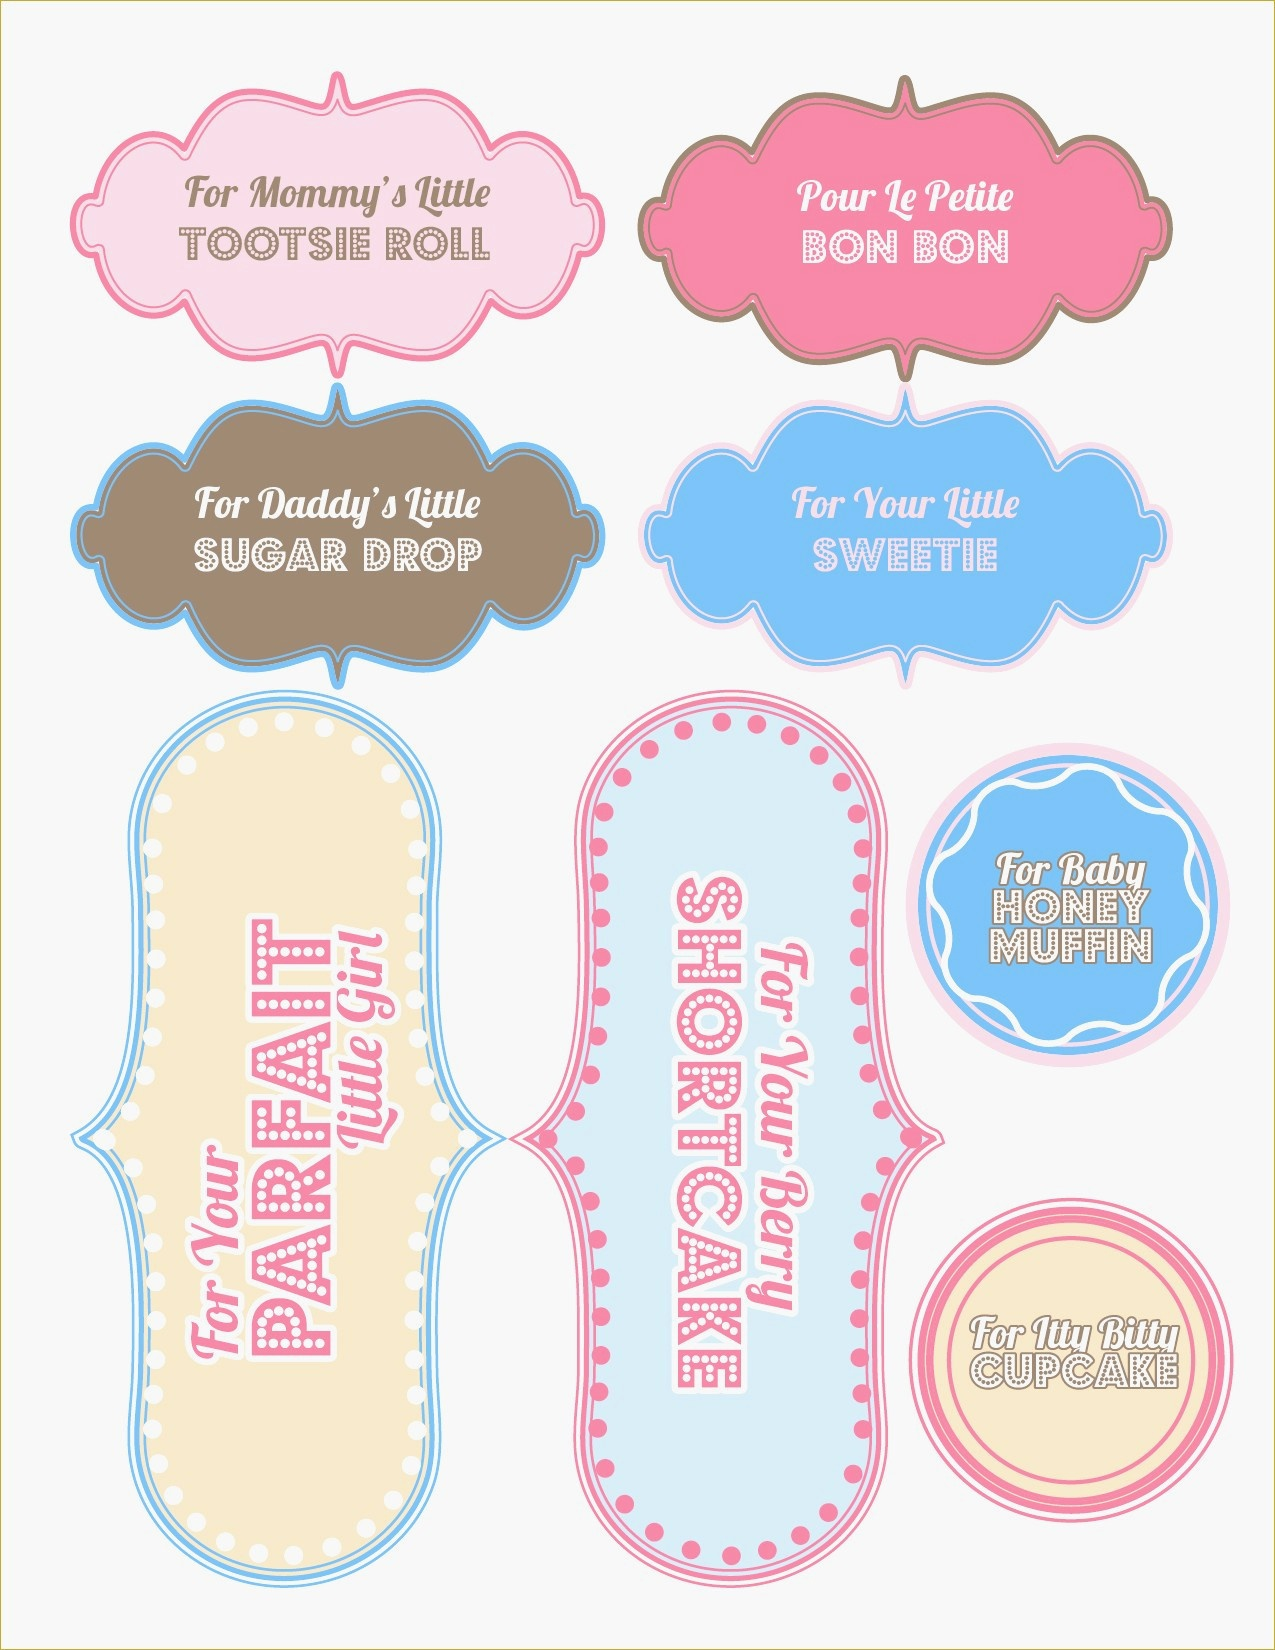 Free Printable Baby Shower Favor Tags Template Brochure Templates - Free Printable Baby Shower Favor Tags Template